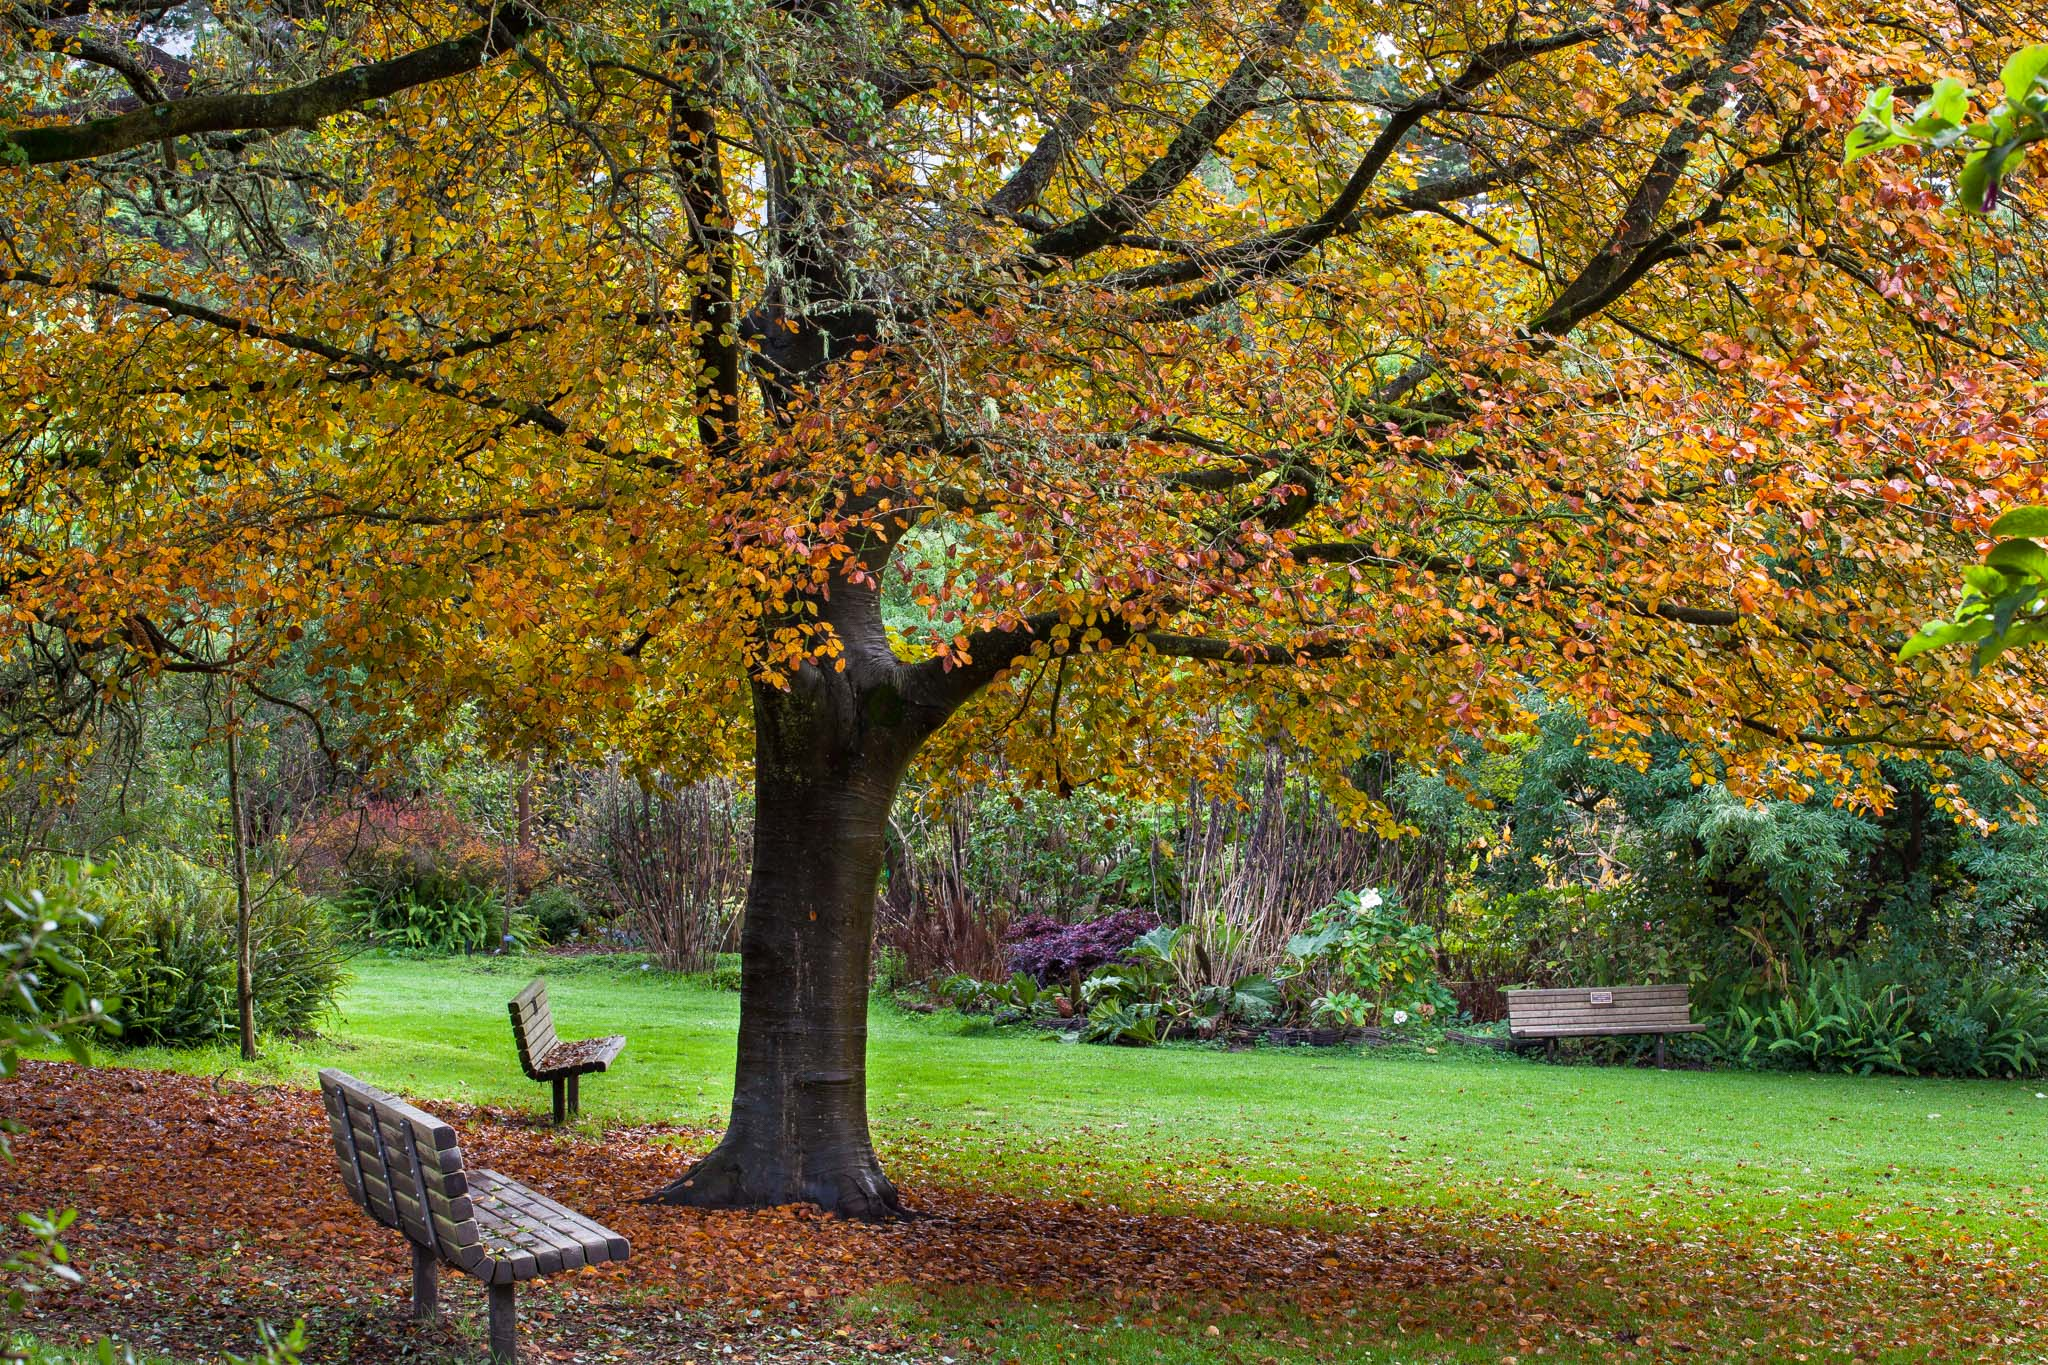 Free Cheap Sf >> Last Chance: Peak of Fall Colors at SF Botanical Garden | Golden Gate Park